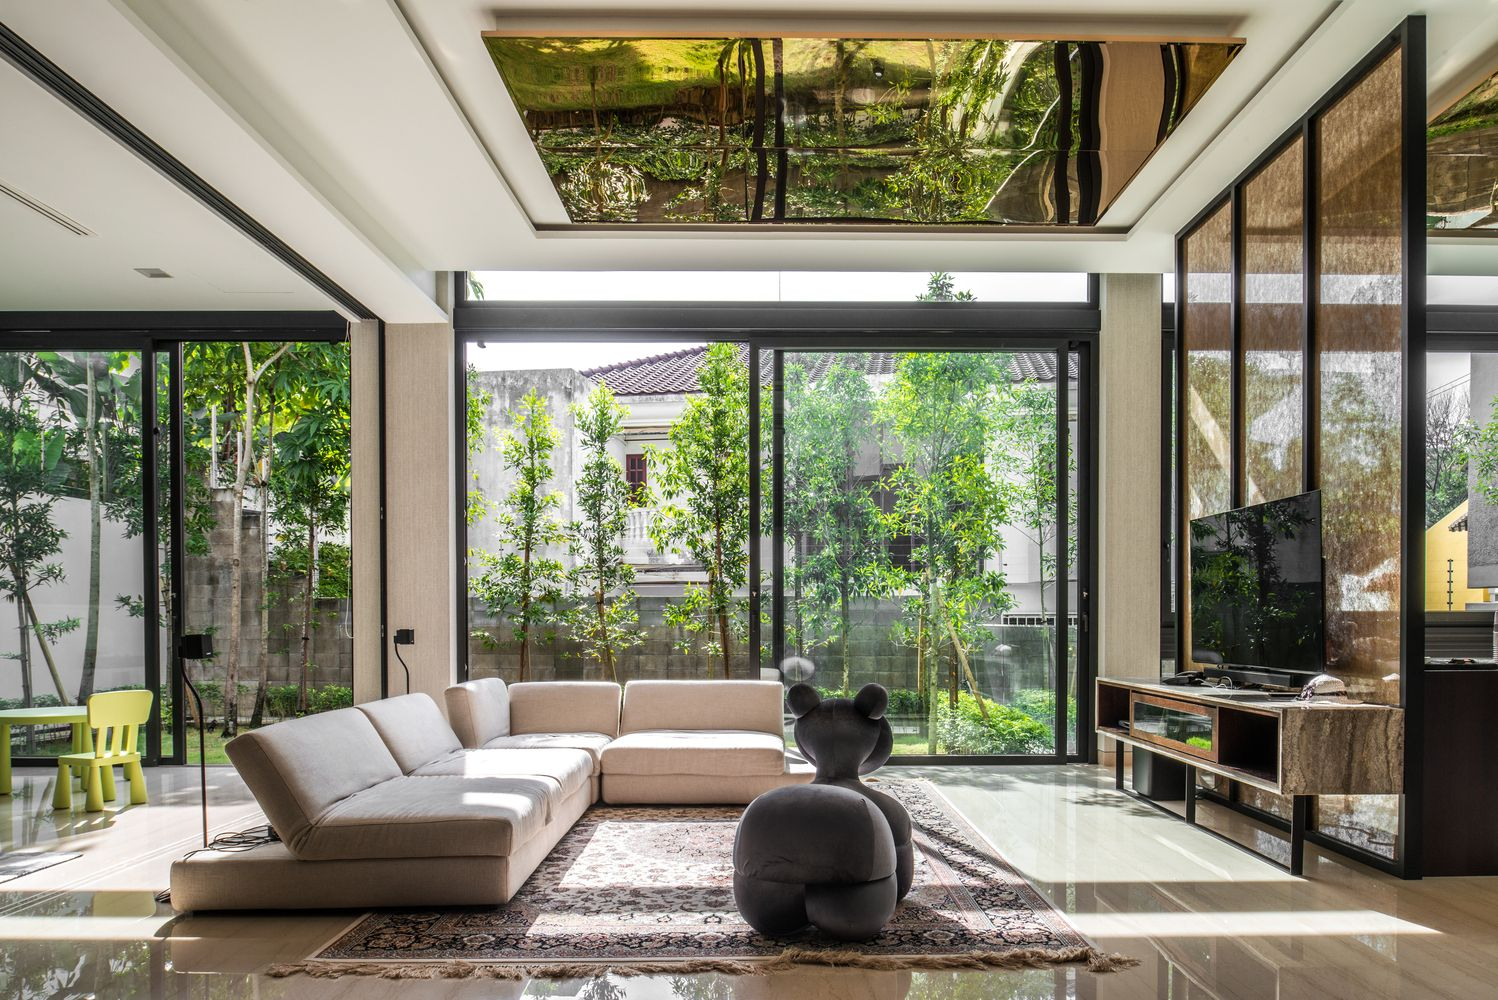 Gallery Of C House Design Collective Architect 7 House Design Contemporary Interior Design Contemporary Interior